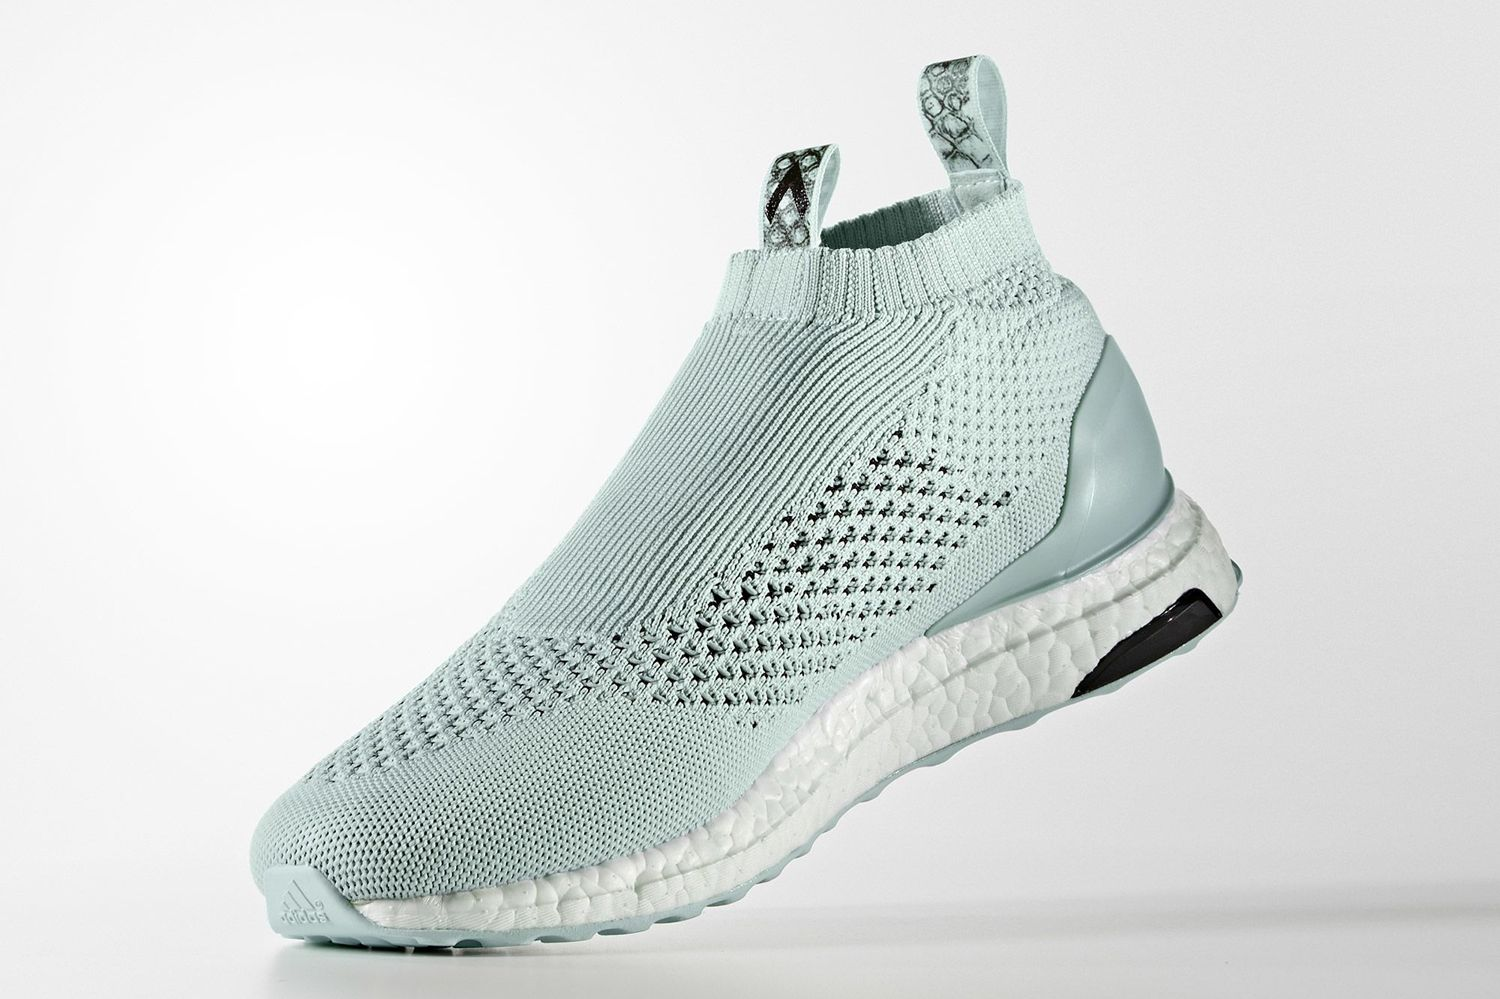 The adidas Ace 16+ PureControl Ultra Boost released not very long ago for  the first time right after the Euro 2016 finals in black and neon yellow. 70d276276